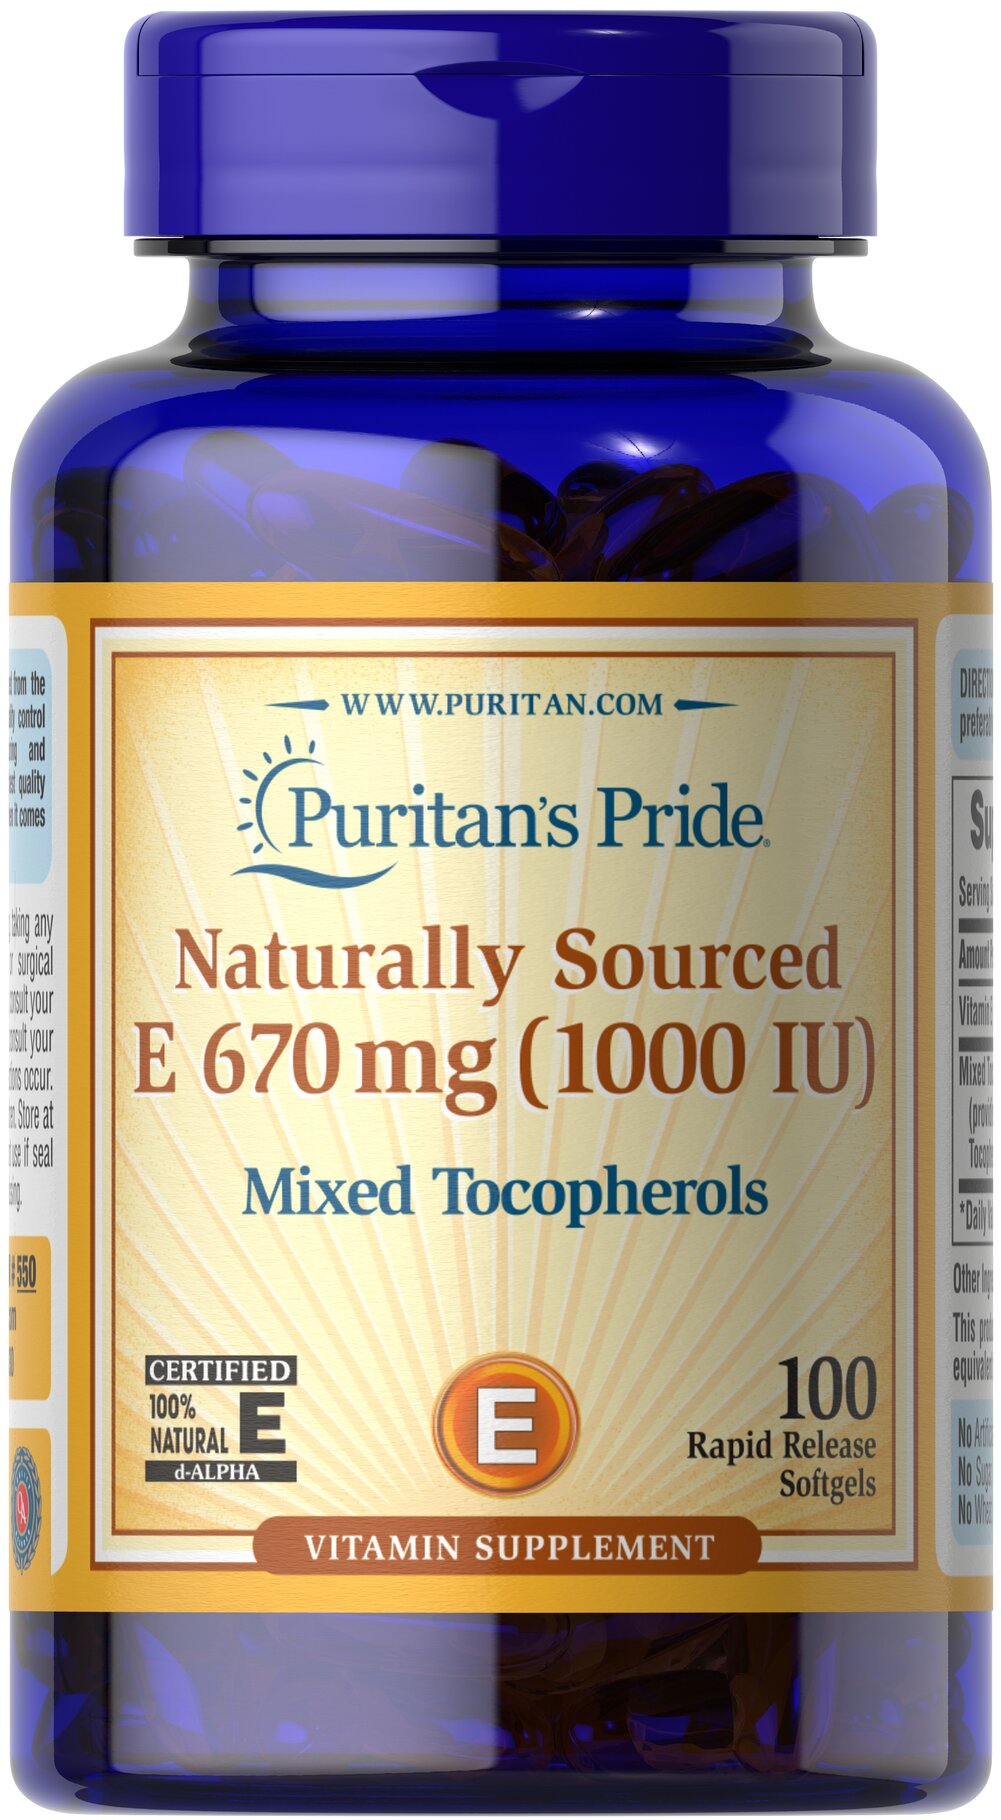 Vitamin E-1000 IU Mixed Tocopherols Natural <p><strong>Vitamin E</strong> promotes immune function and helps support cardiovascular health.** Vitamin E is also a powerful <strong>antioxidant</strong> that helps fight cell-damaging free radicals in the body.** Studies have shown that oxidative stress caused by free radicals may contribute to the premature aging of cells.**</p> 100 Softgels 1000 IU $33.74